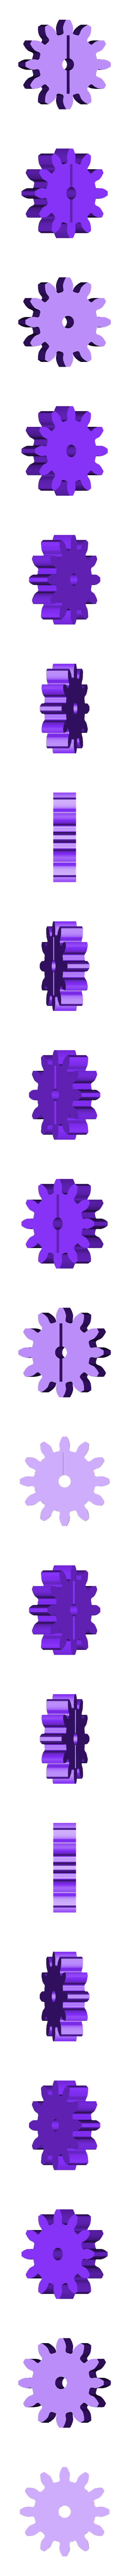 steel.stl Download free STL file 4 ways to attach gears to the shaft (example gears) • Object to 3D print, LetsPrintYT